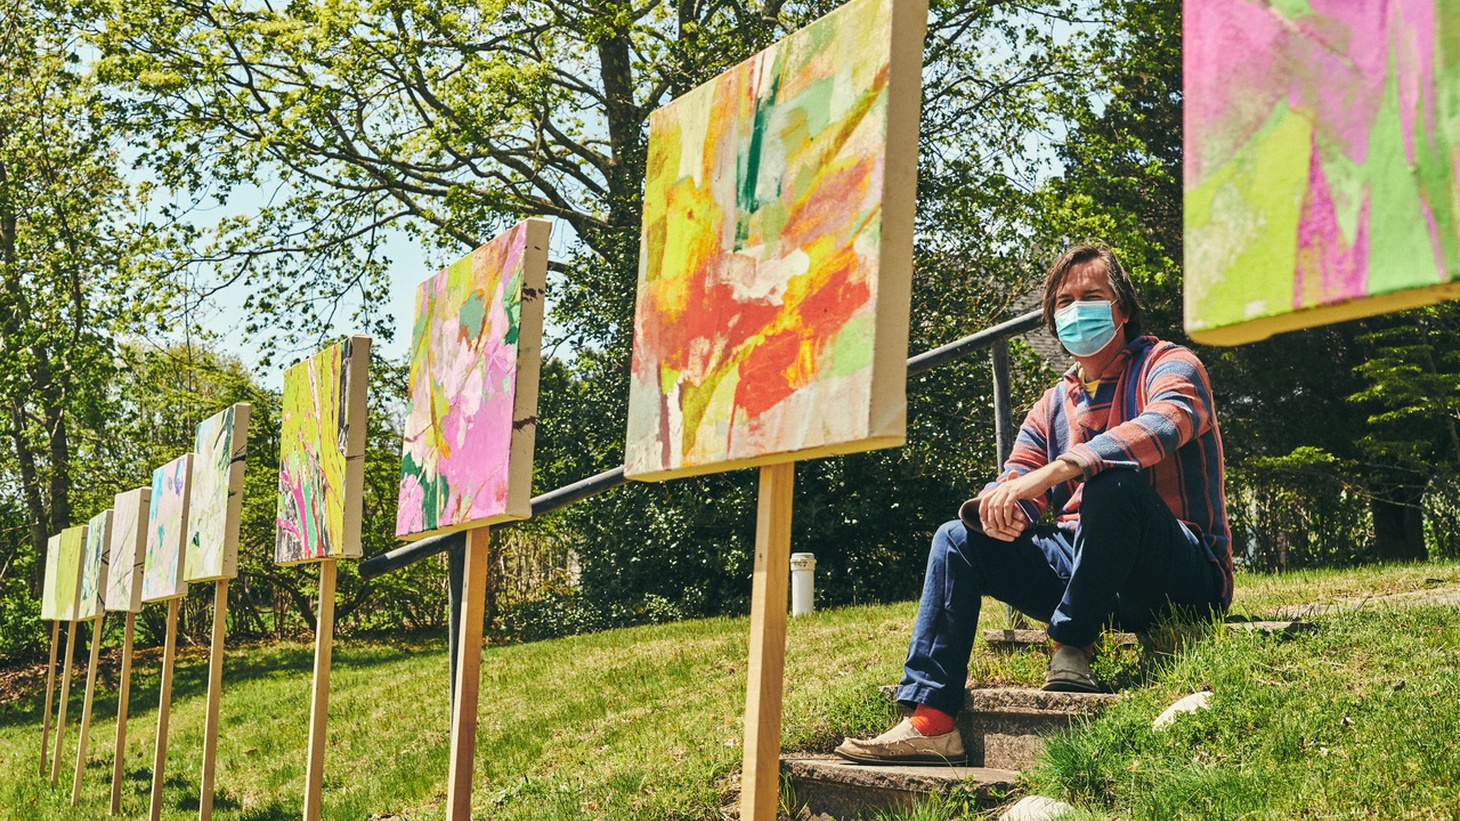 Eric Dever installed his artwork outdoors for Drive-By-Art in South Fork, Long Island.